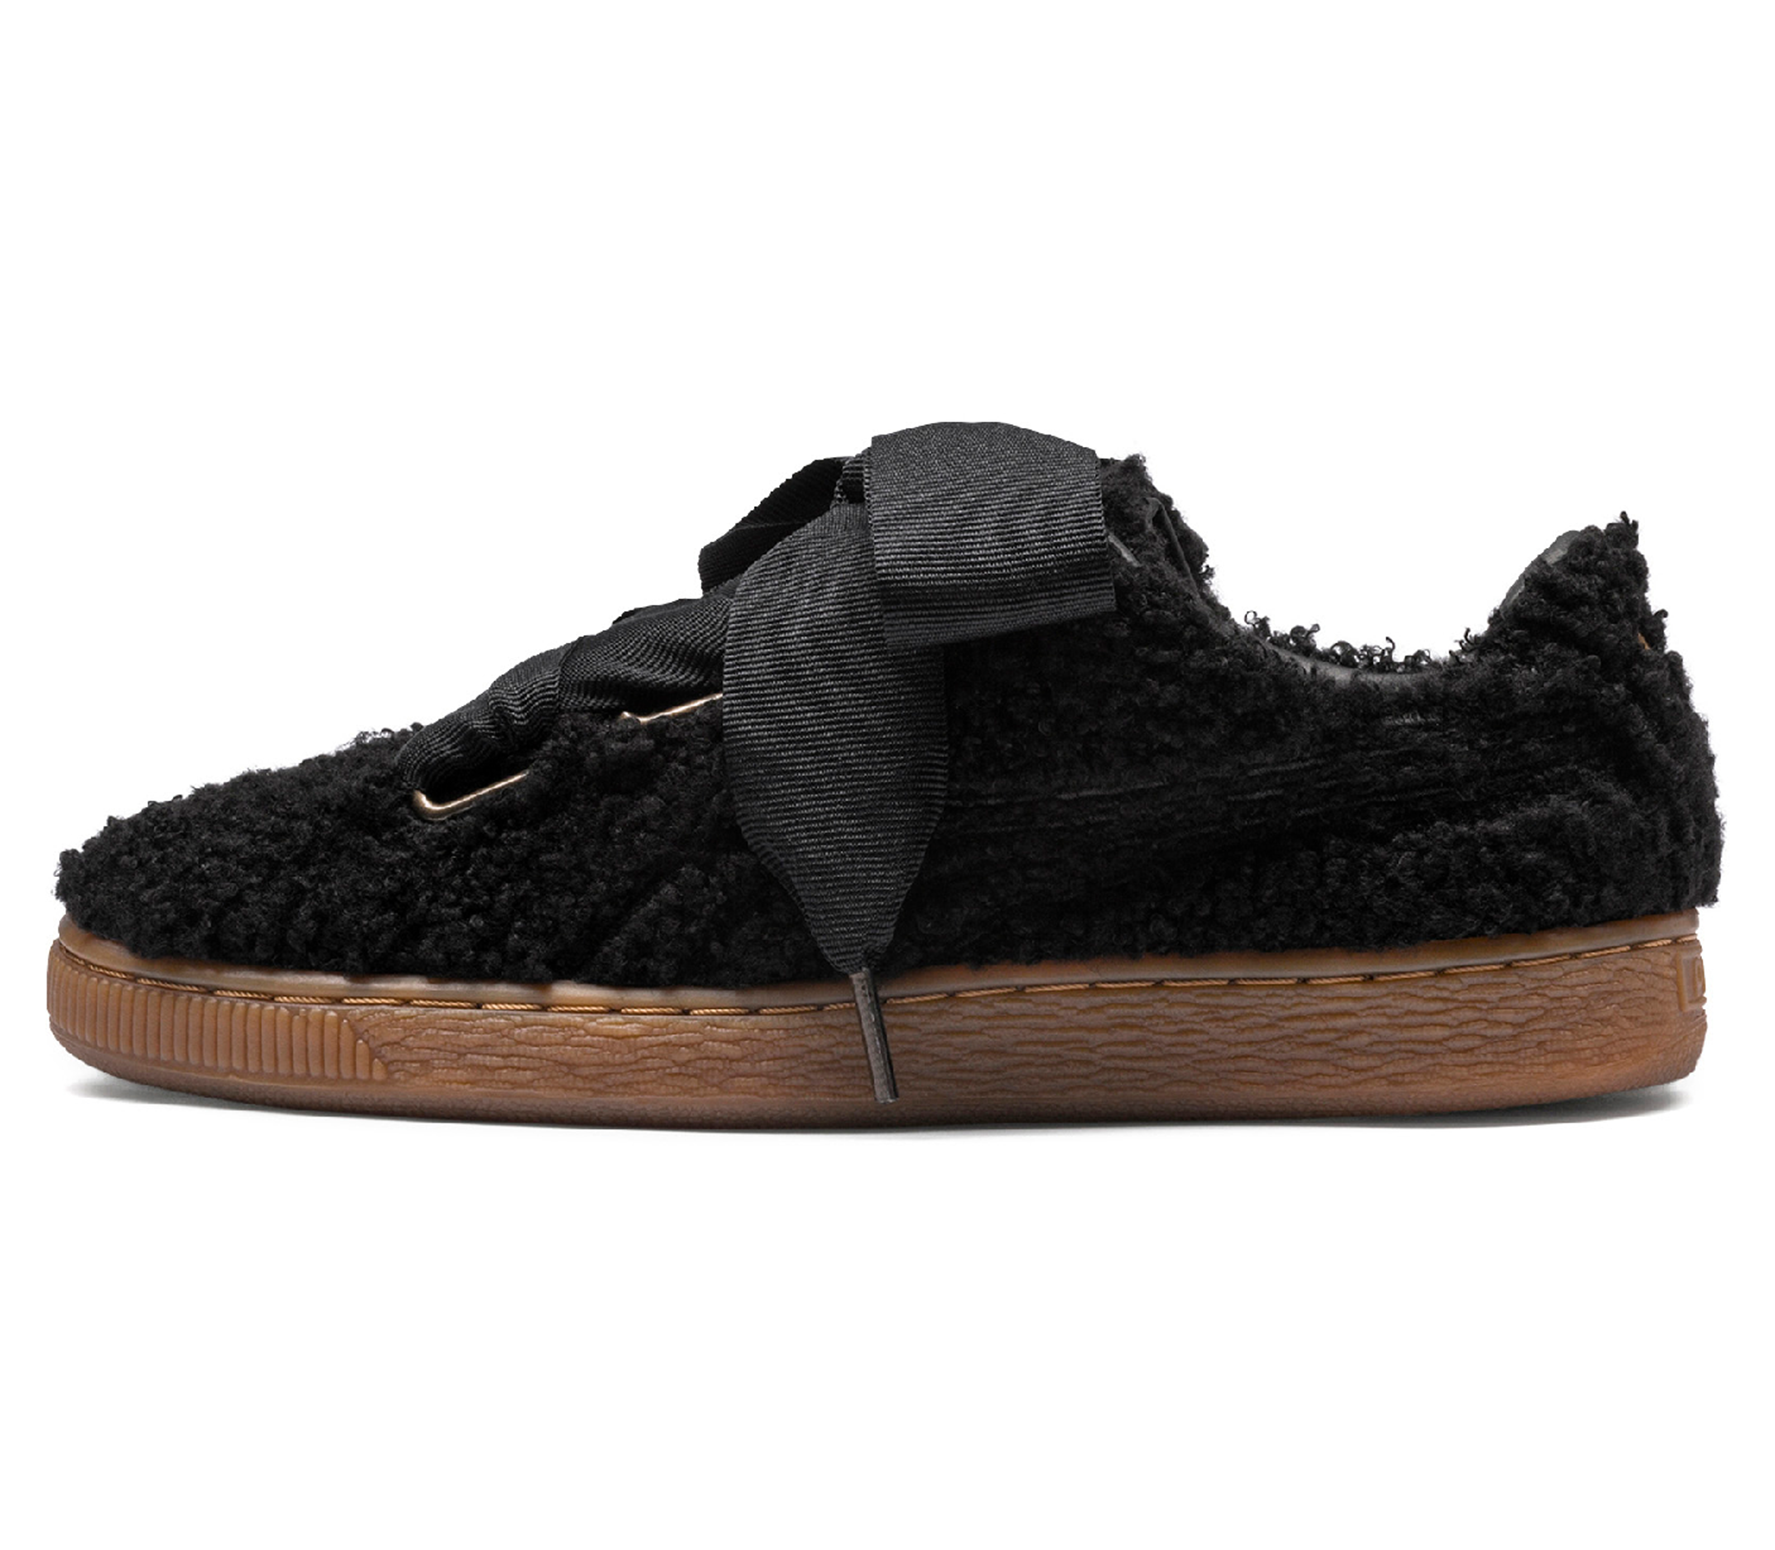 2e710c8d70b Puma Basket Heart Teddy women s trainers (black) online kaufen ...